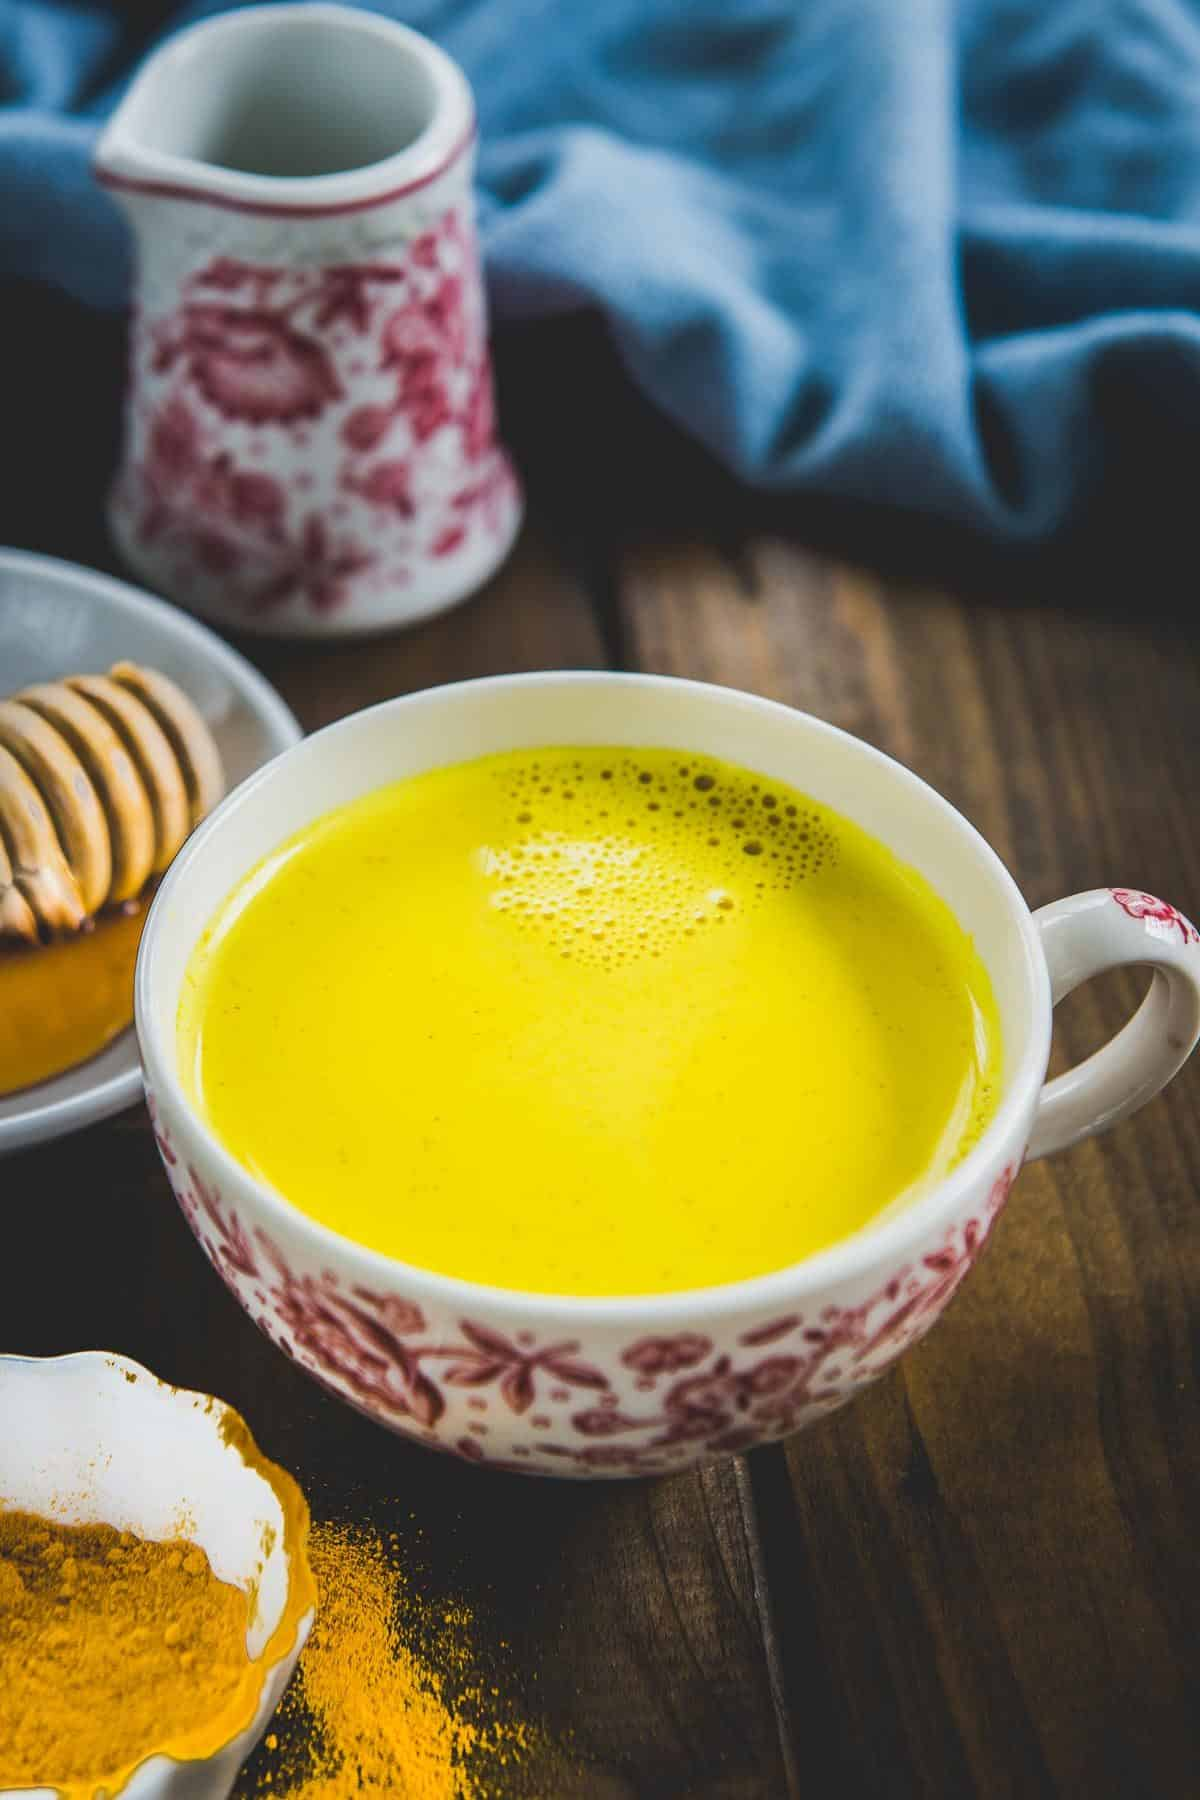 Turmeric milk served in a cup.